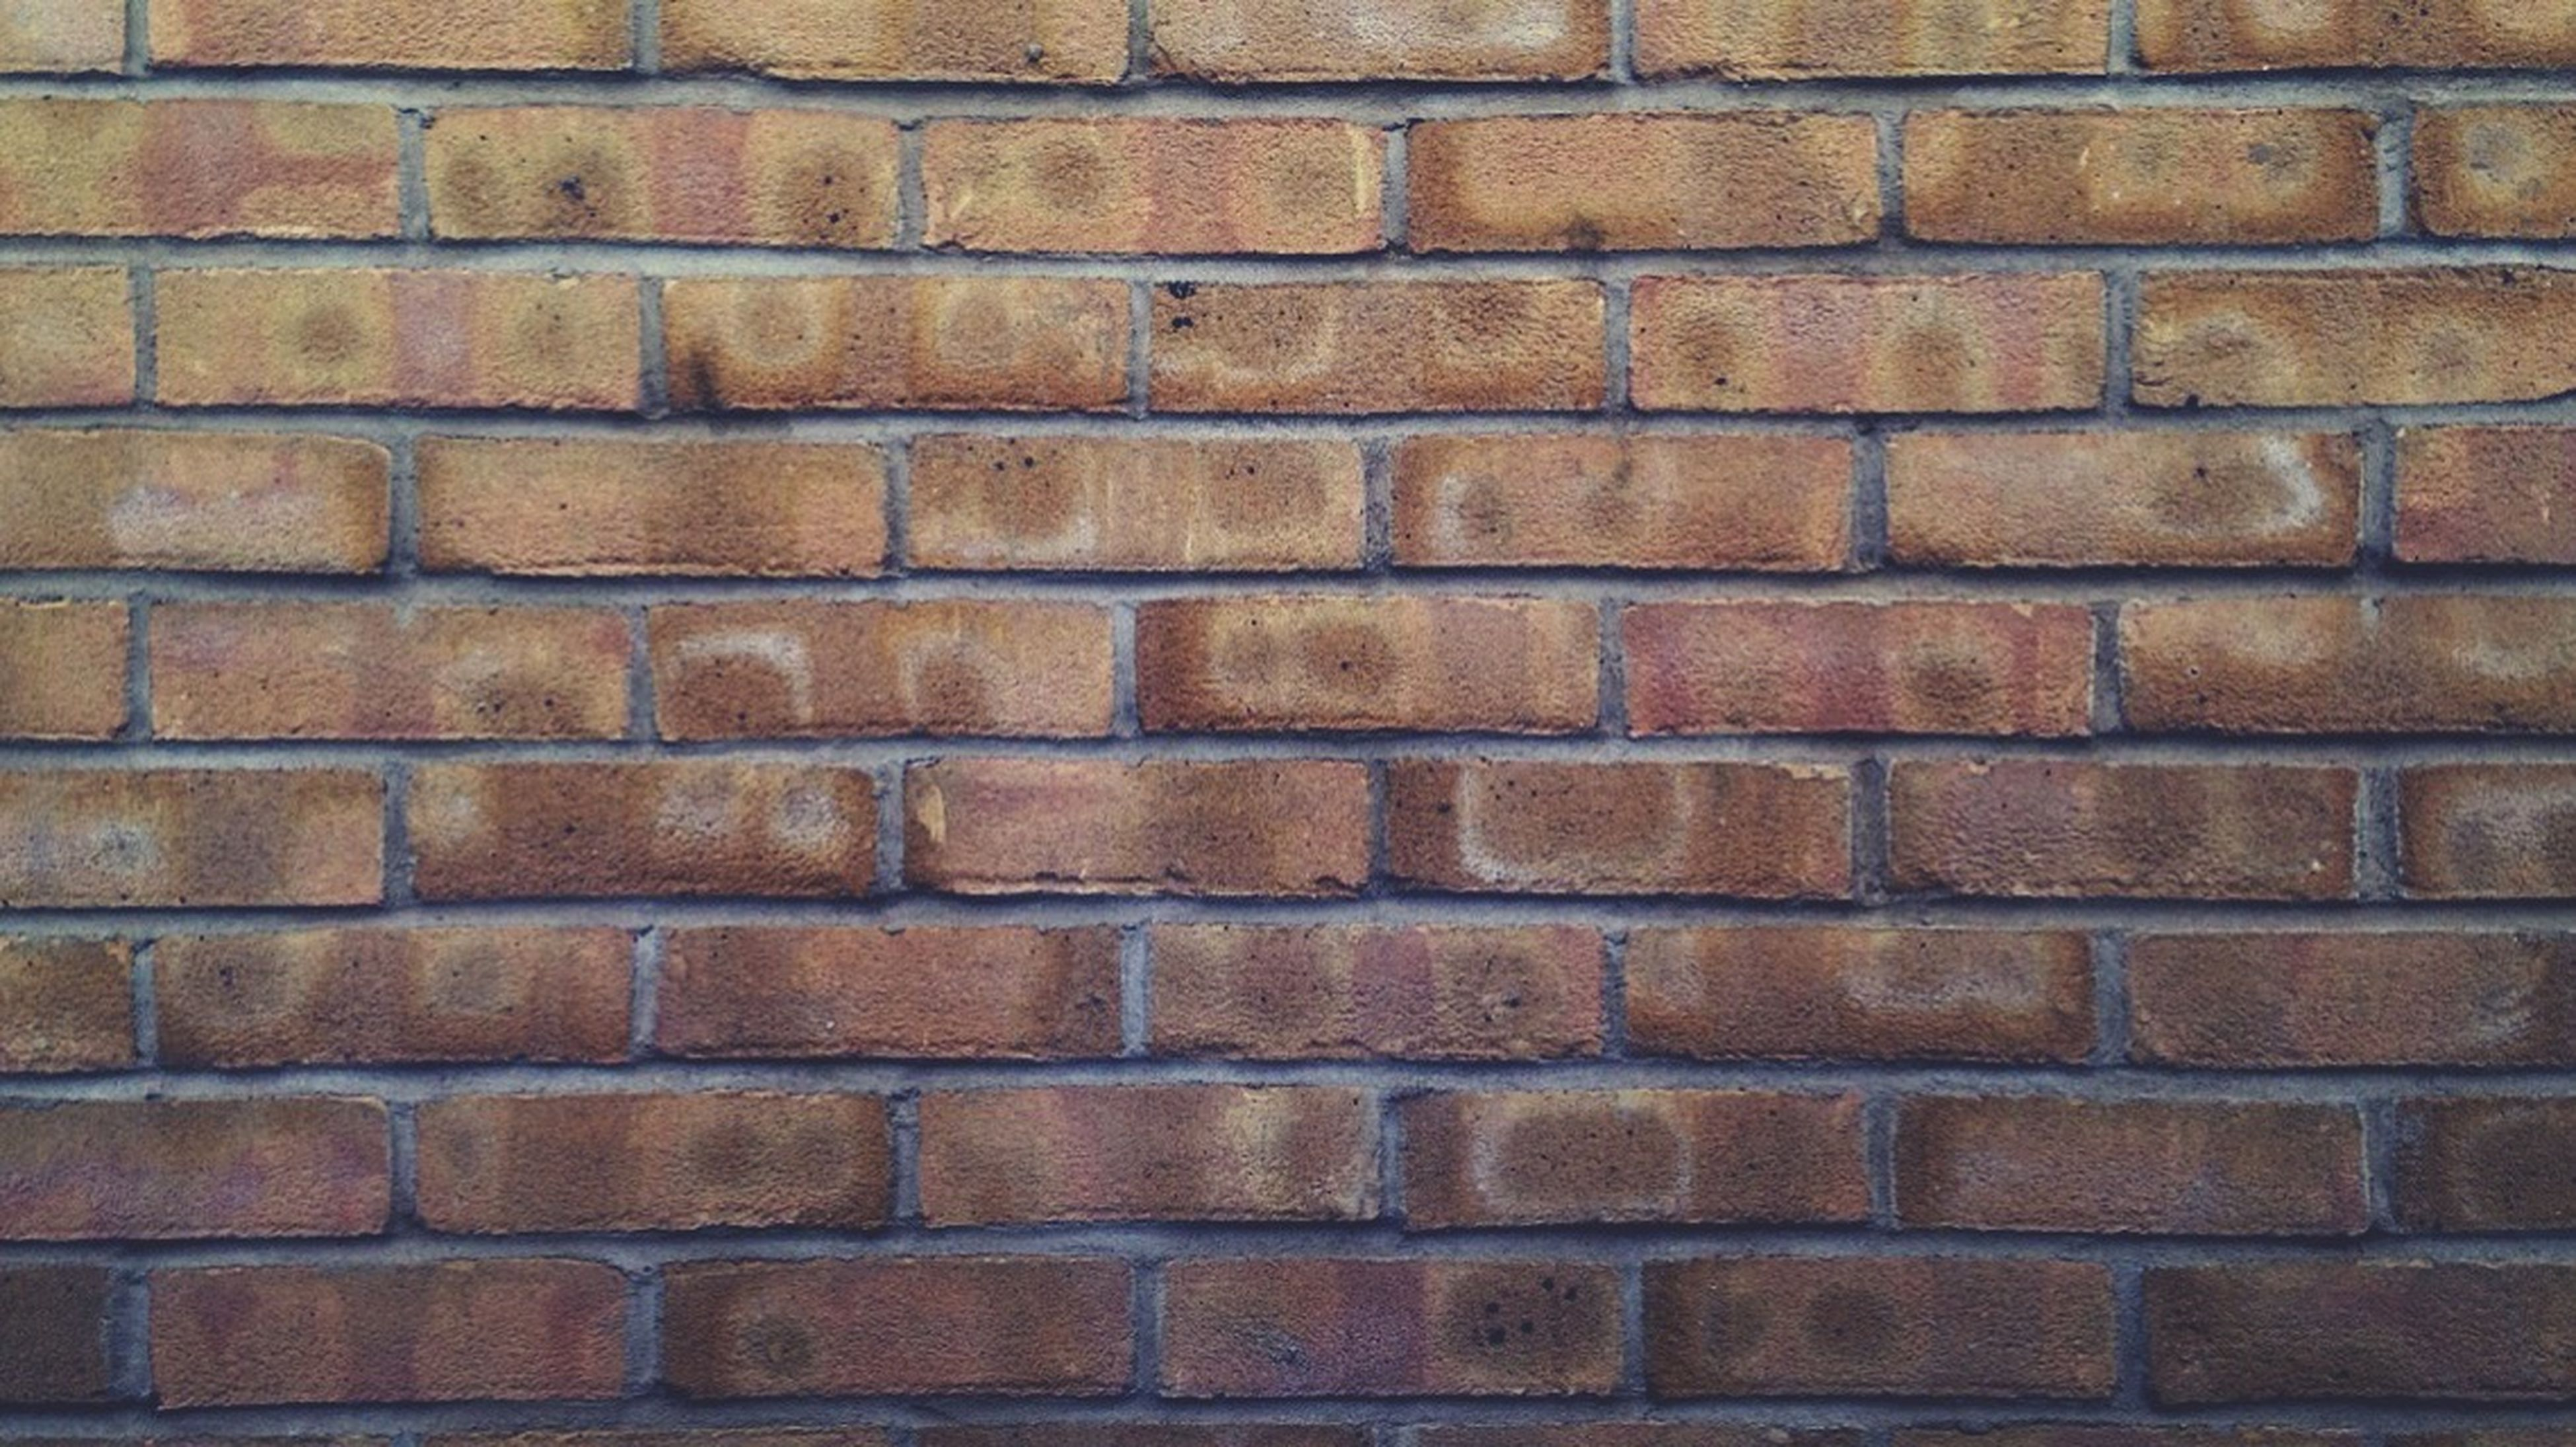 brick wall, architecture, built structure, wall - building feature, full frame, building exterior, backgrounds, textured, red, brick, pattern, wall, stone wall, close-up, outdoors, day, no people, old, weathered, window